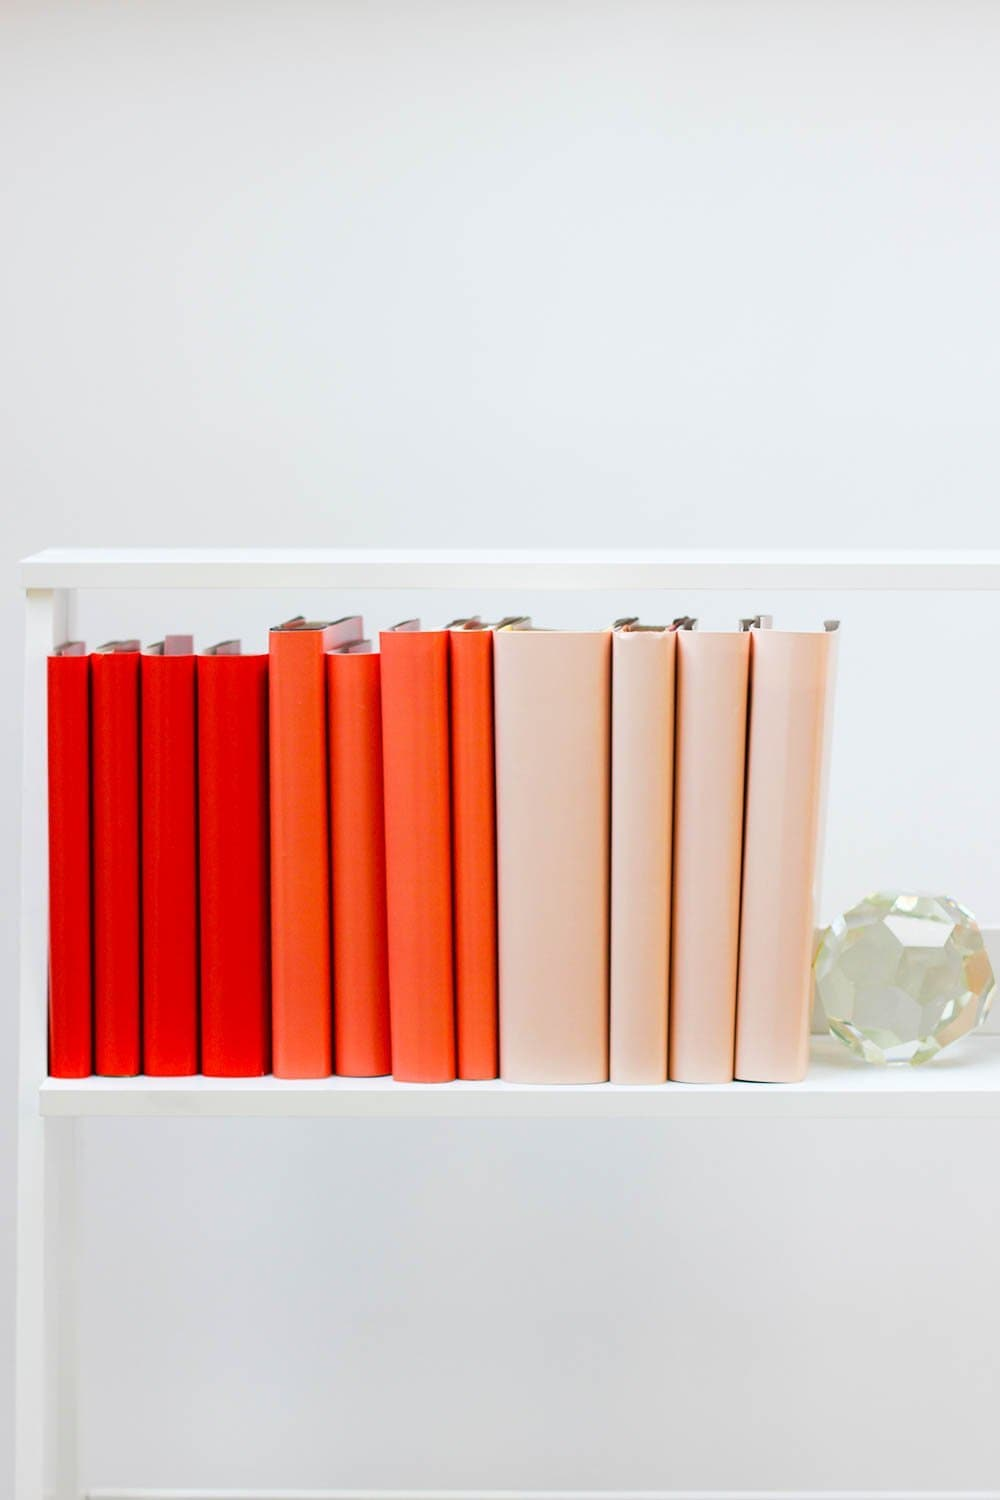 Set of styled red books made with red book covers